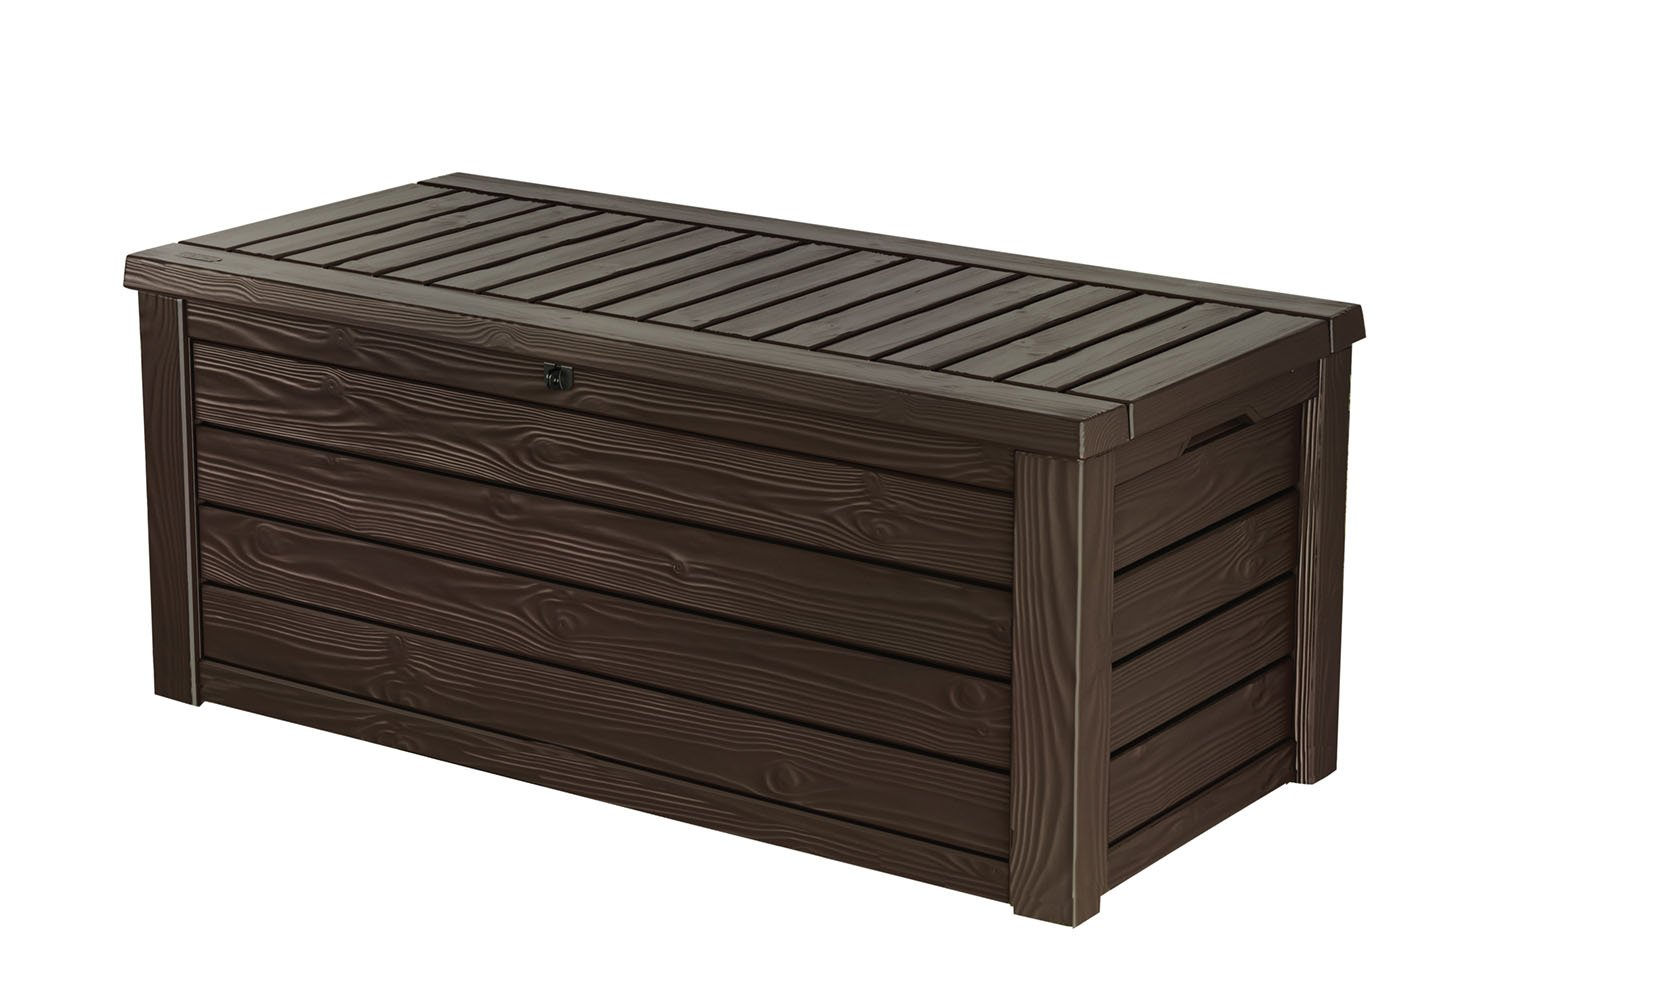 Keter Box Xxl Buy Keter Westwood Plastic Deck Storage Container Box Outdoor